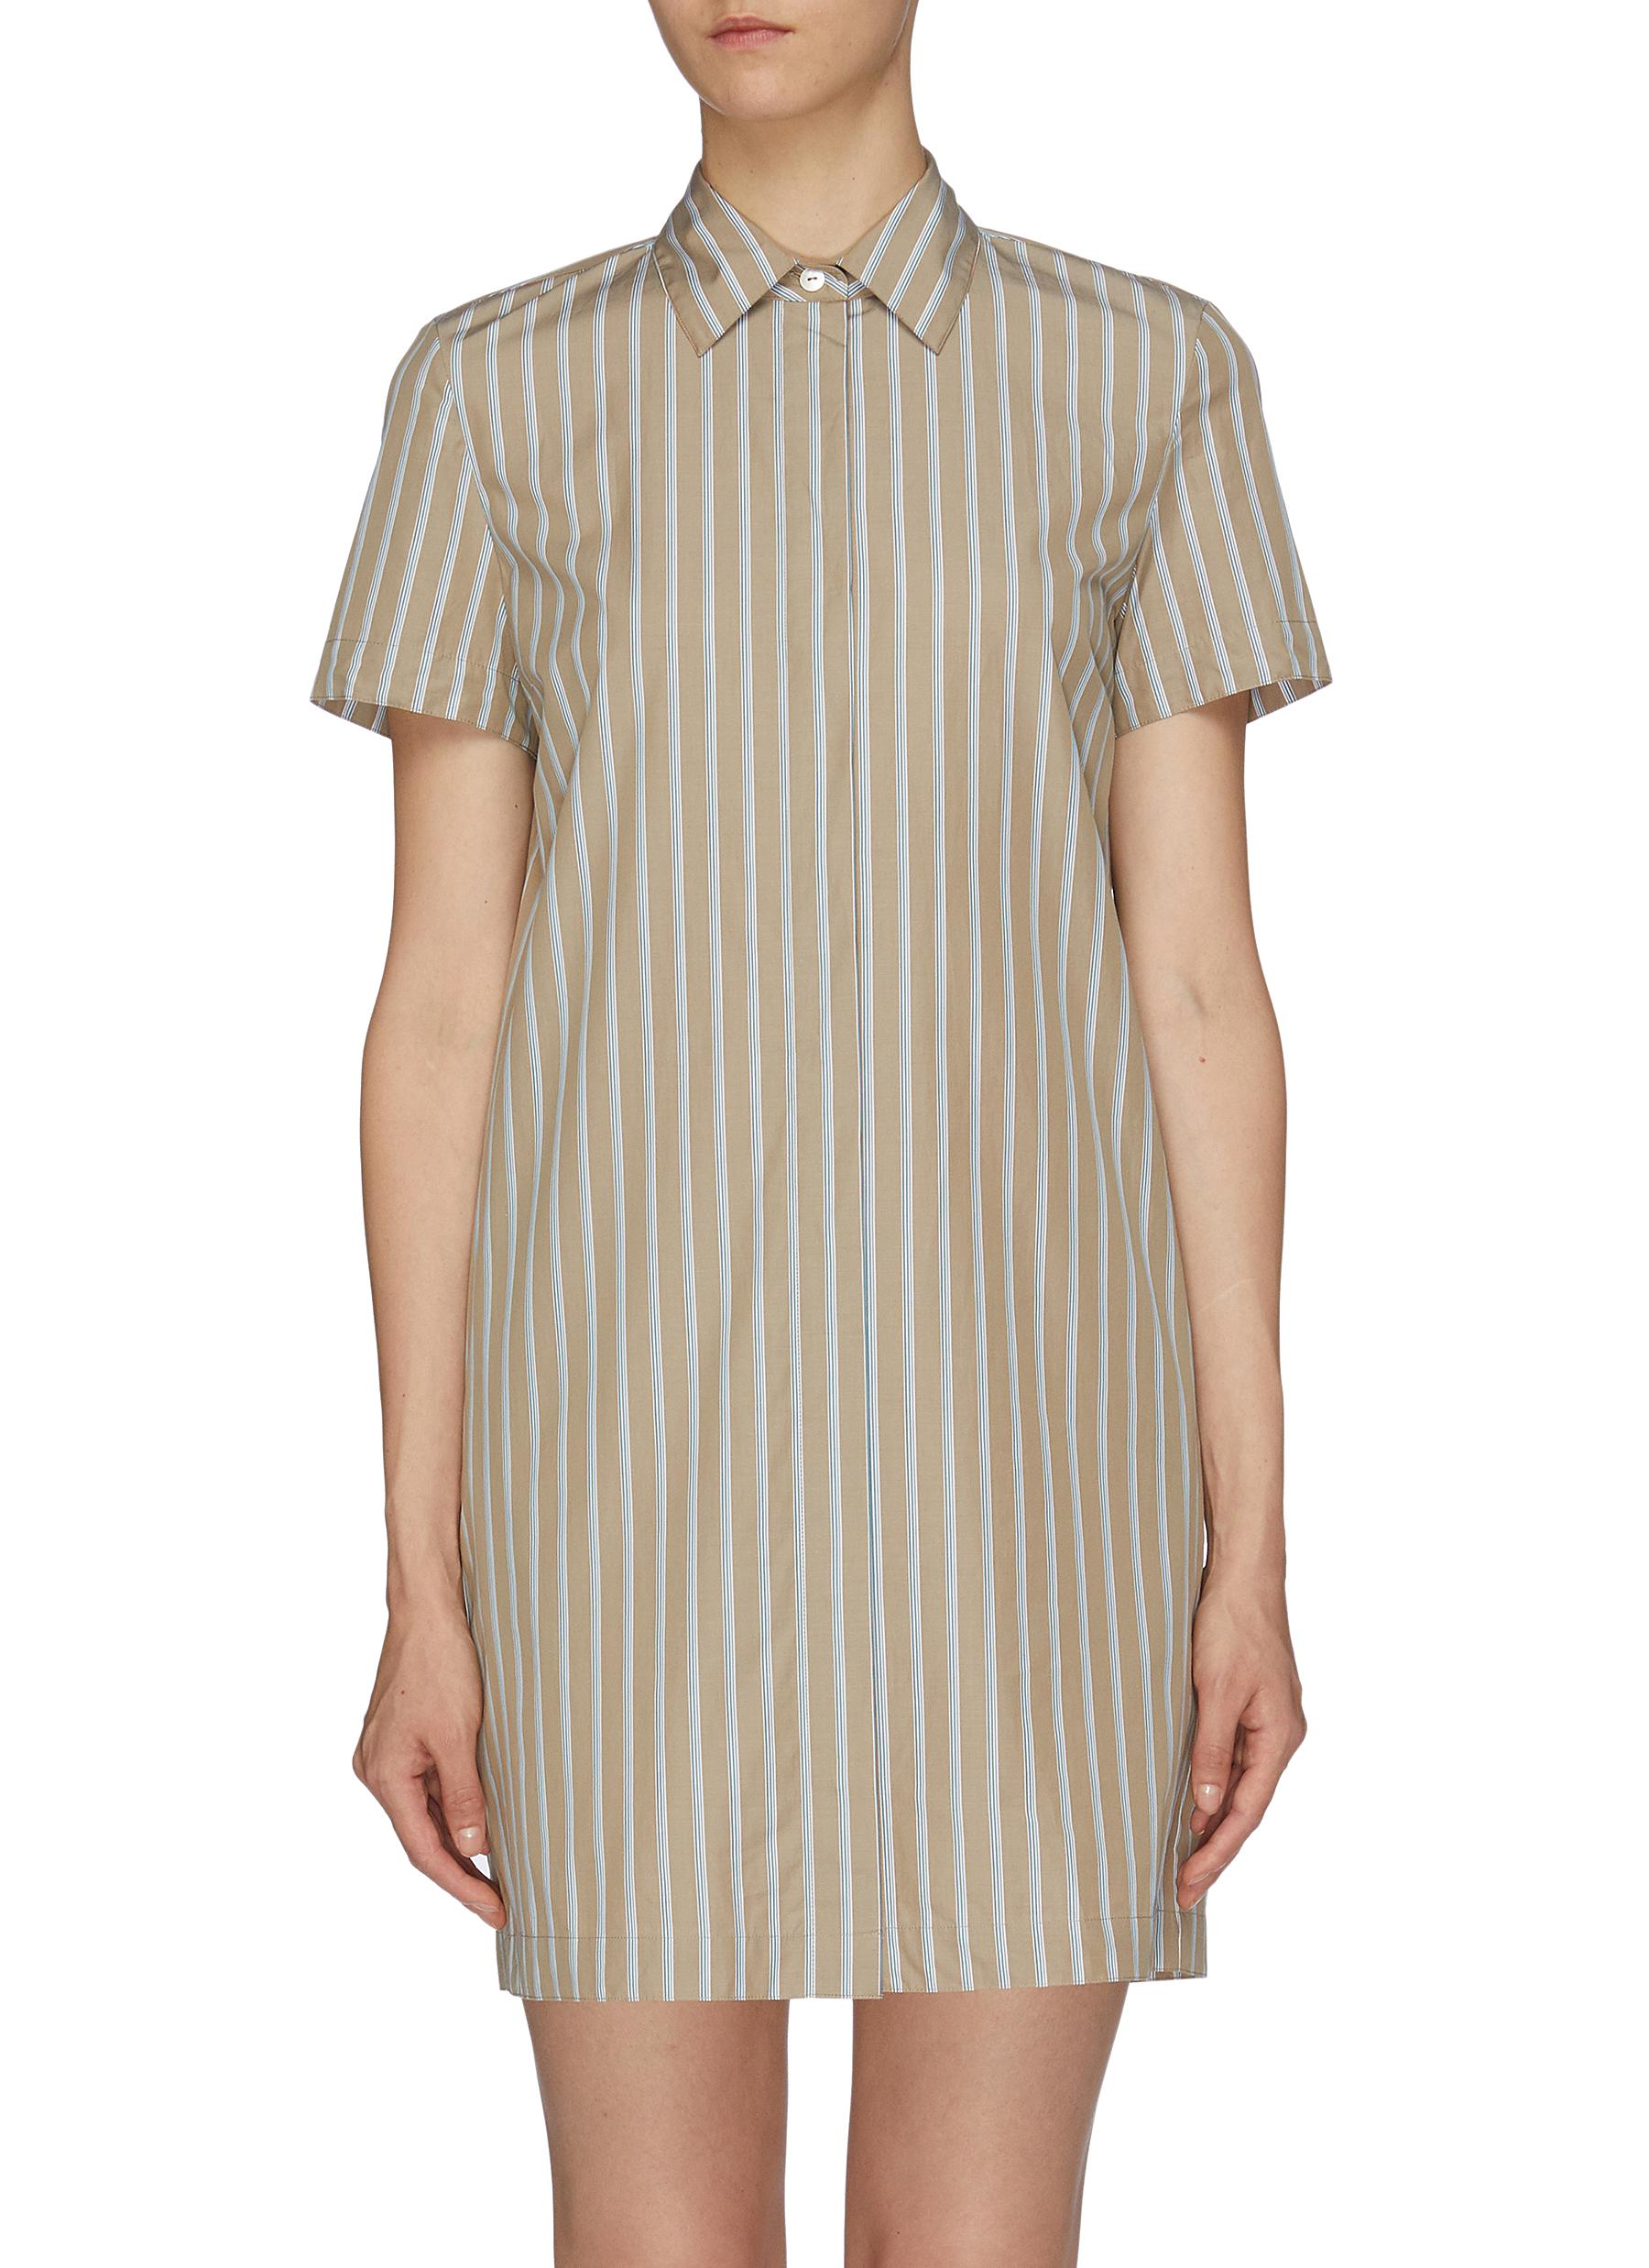 Stripe shirt dress by Theory